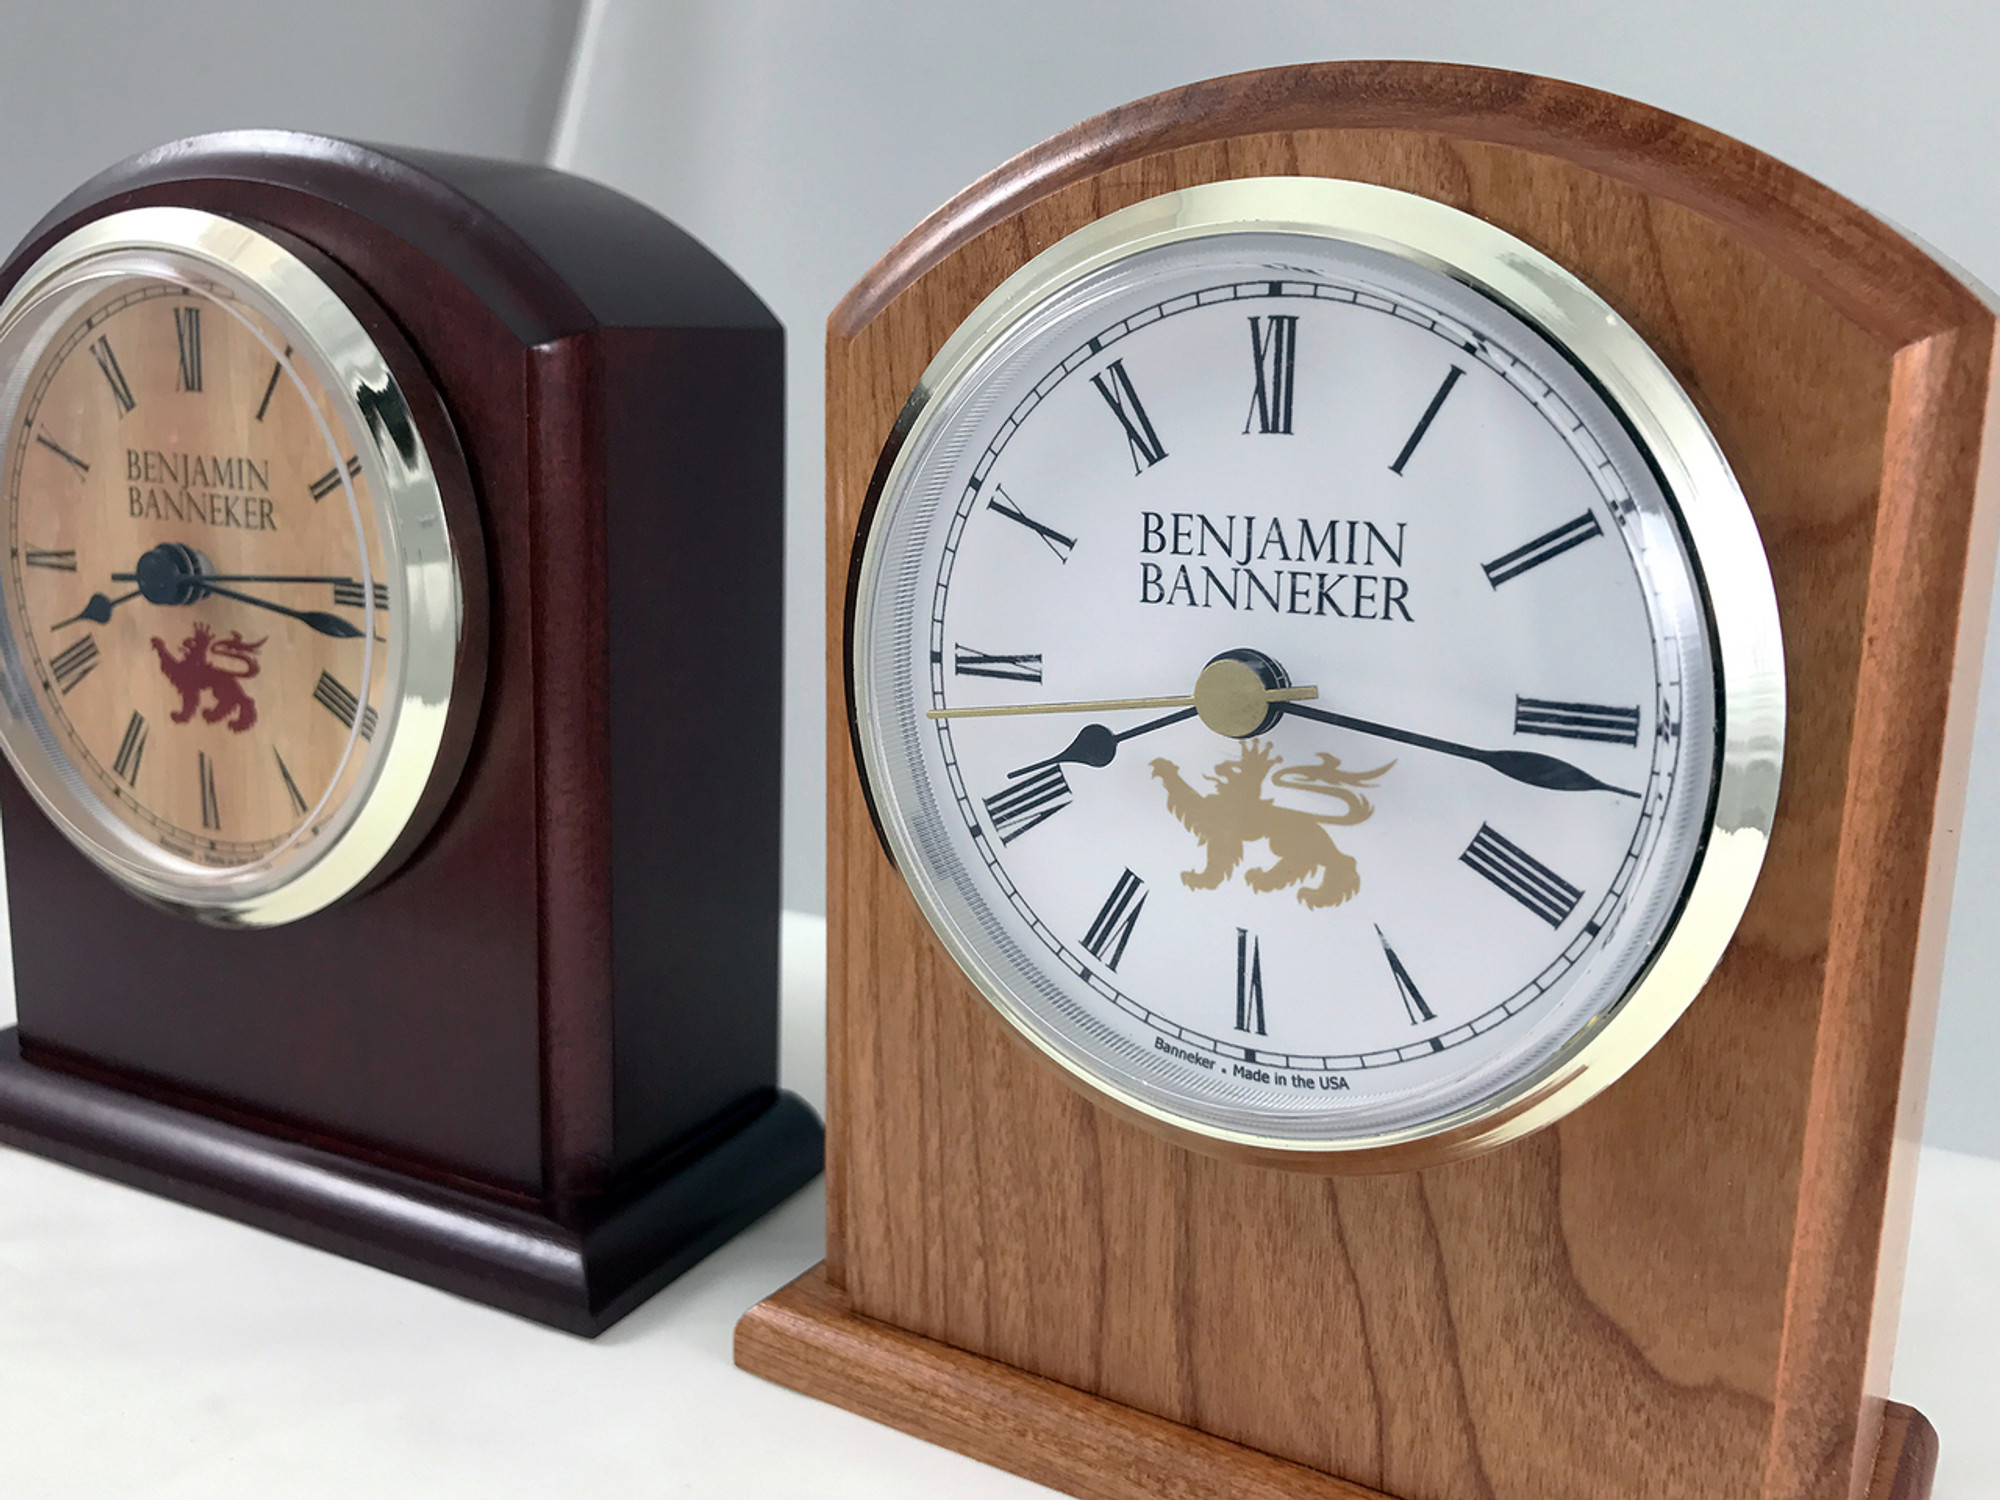 Benjamin banneker wood clock 3500 bc burgundy cherry wood the 3500 is a timeless benjamin banneker desk clock that is made in america and perfect amipublicfo Images